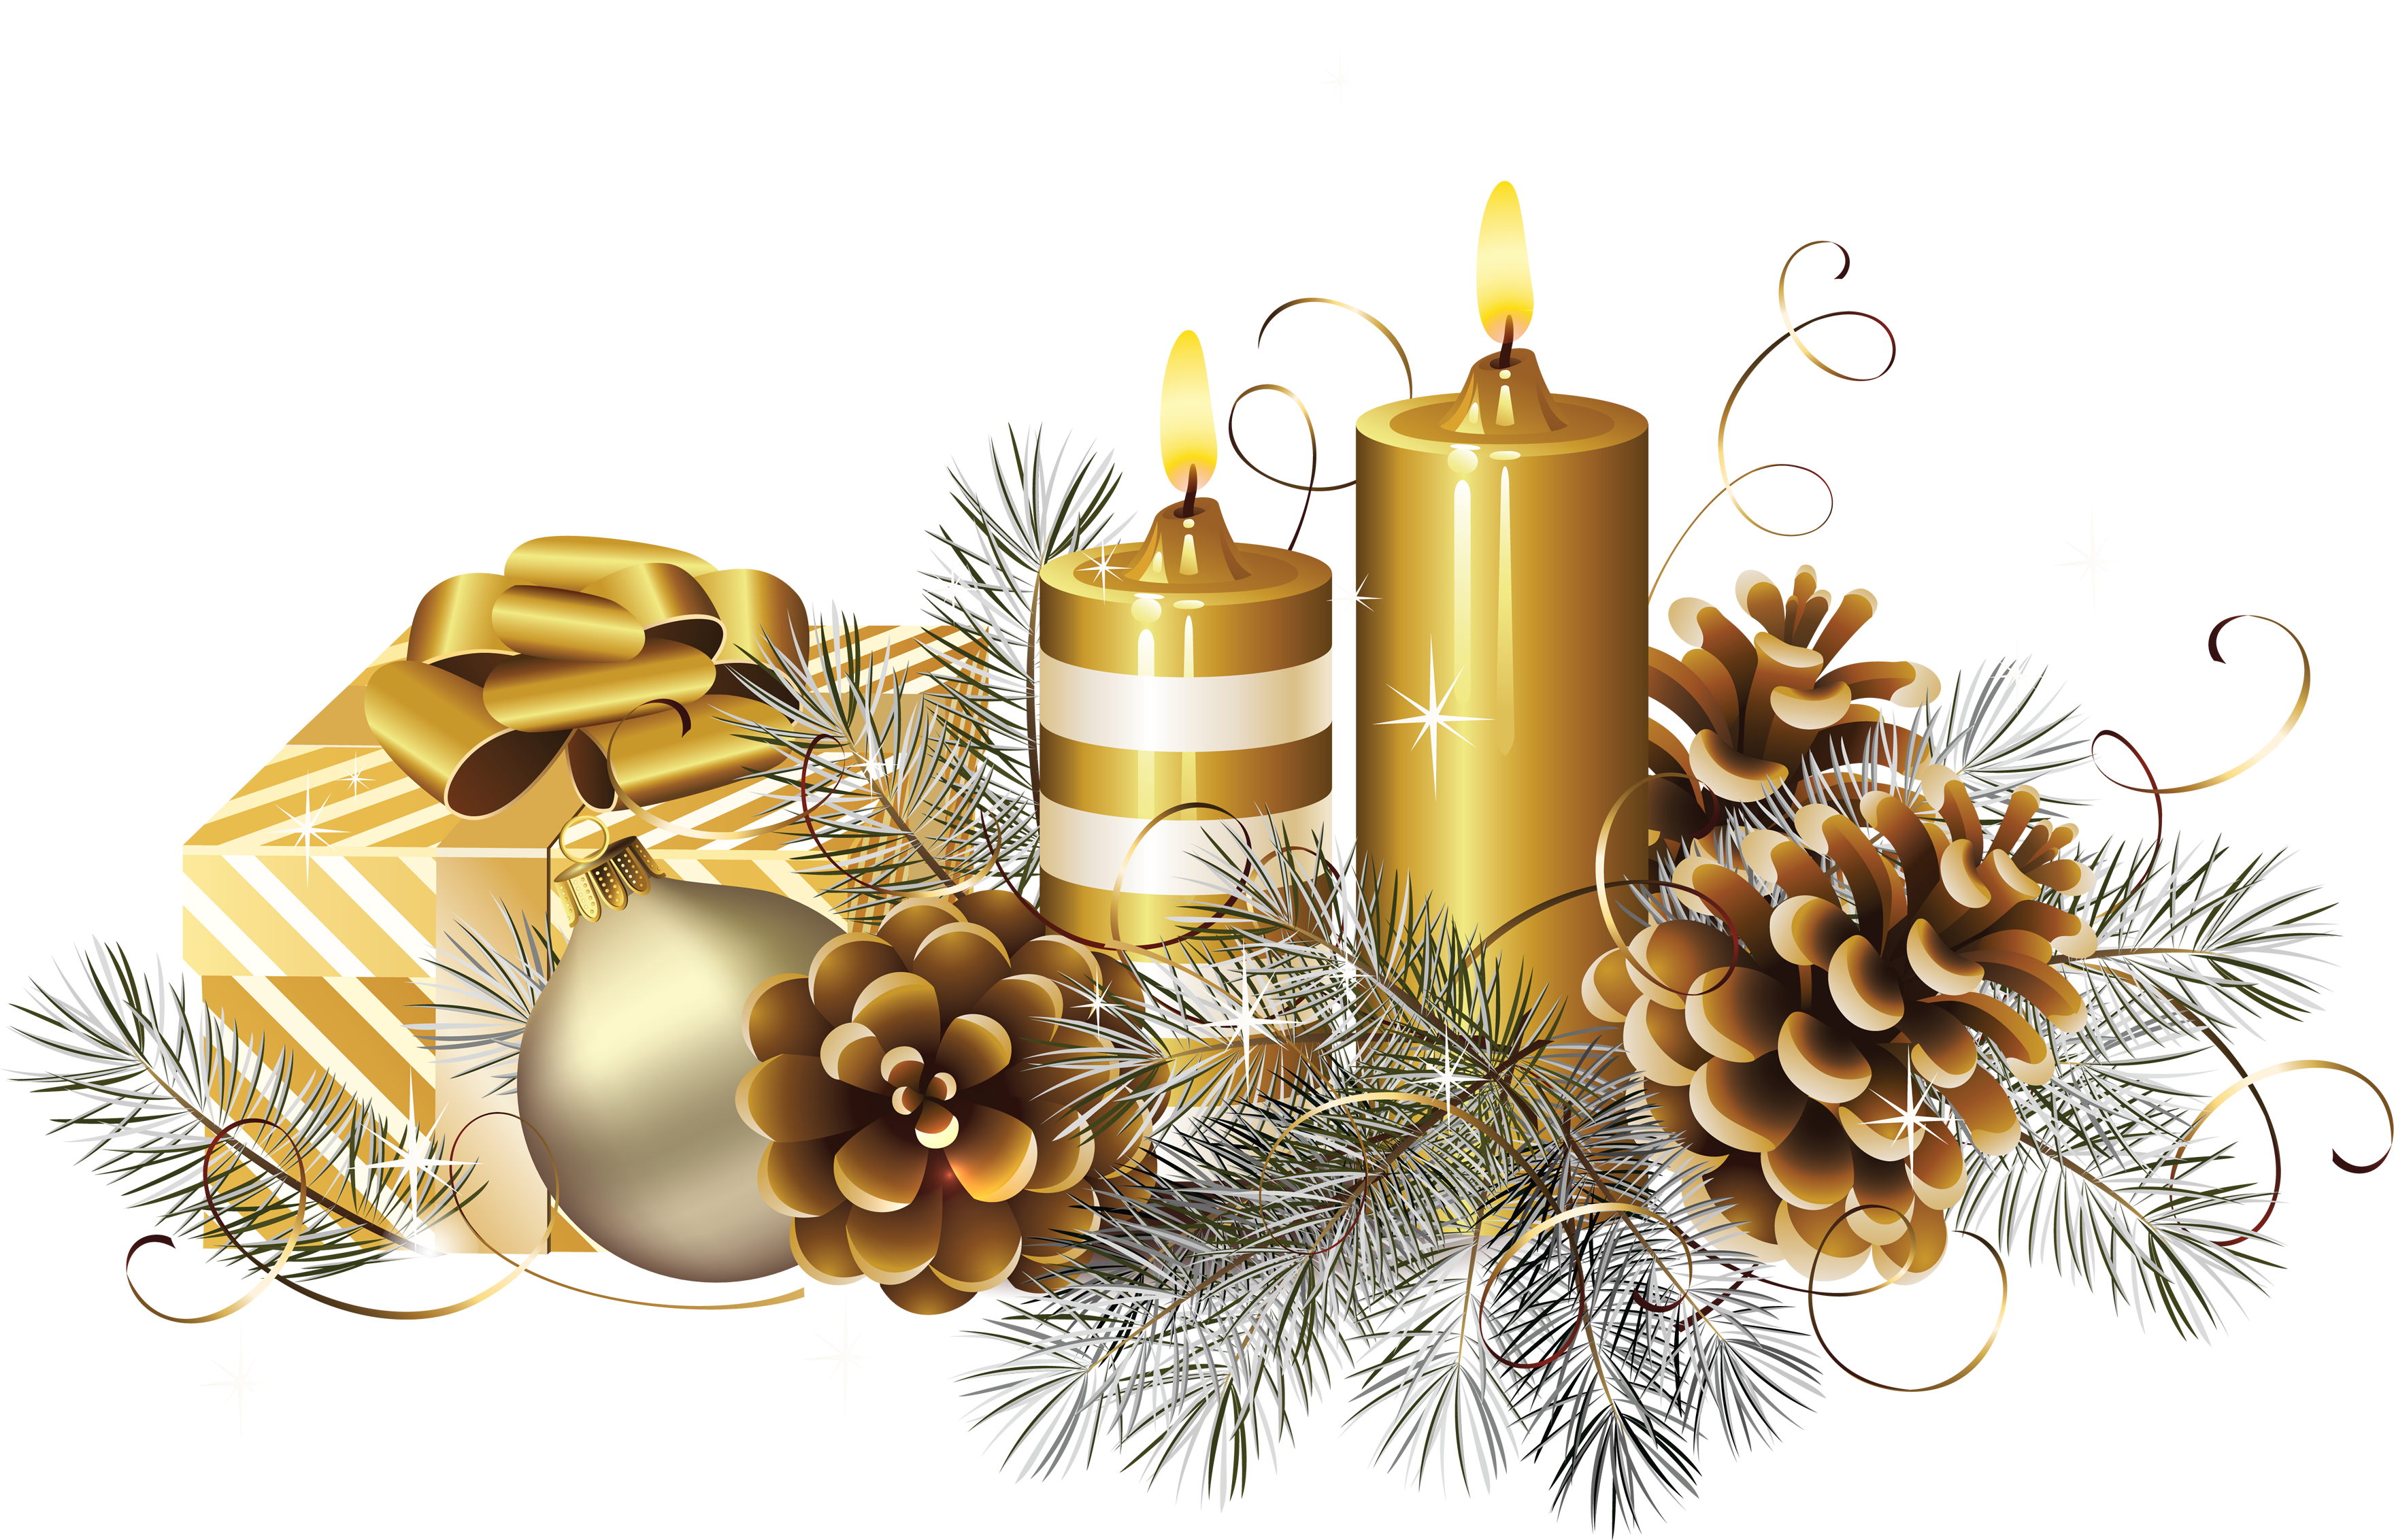 Silver christmas candles png. Candle s image purepng